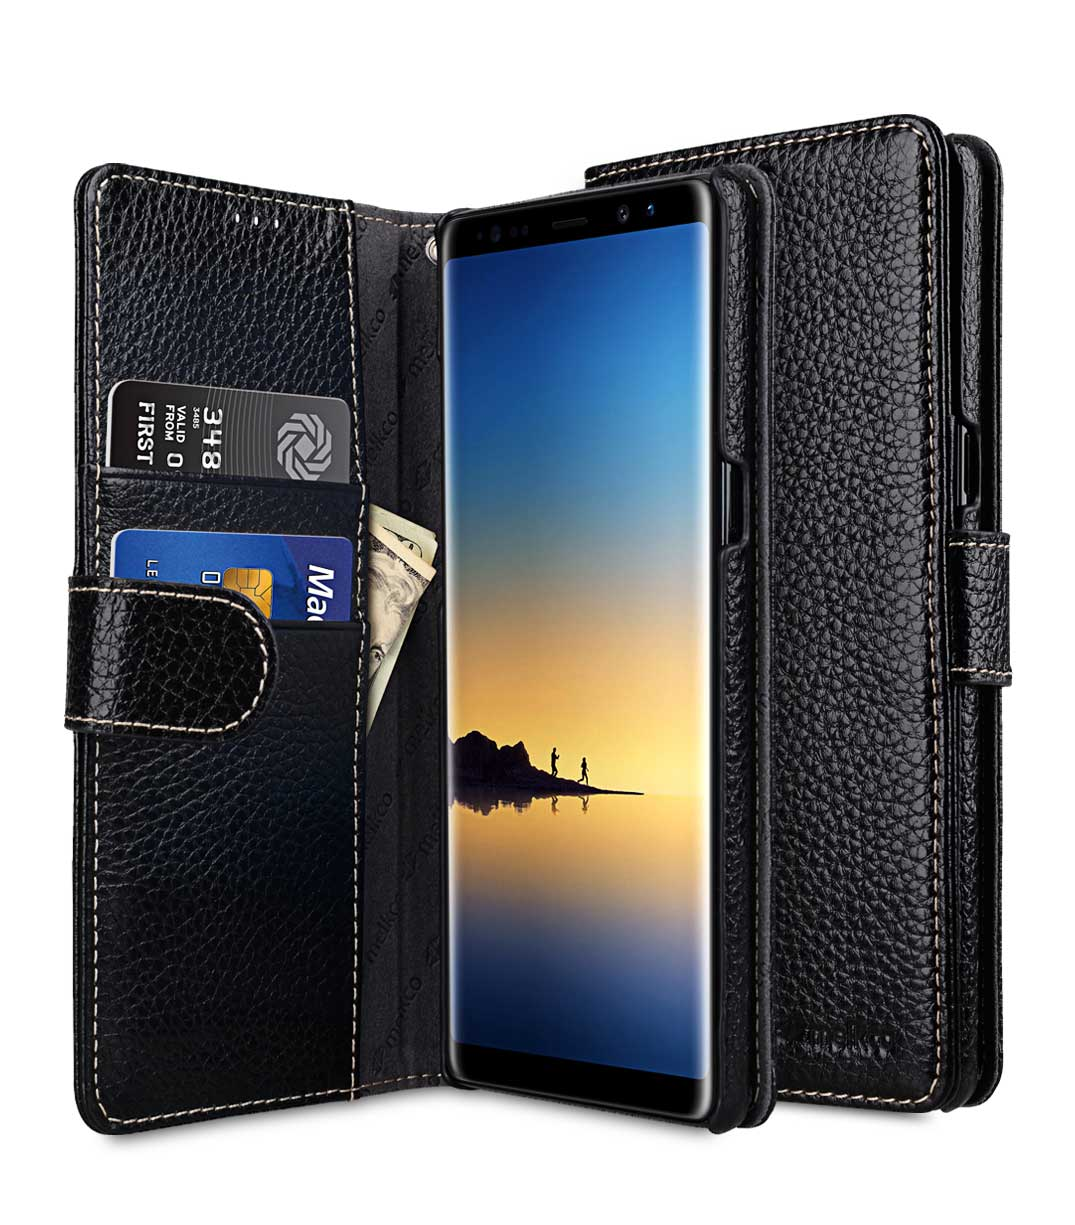 Premium Leather Case For Samsung Galaxy Note 8 Wallet